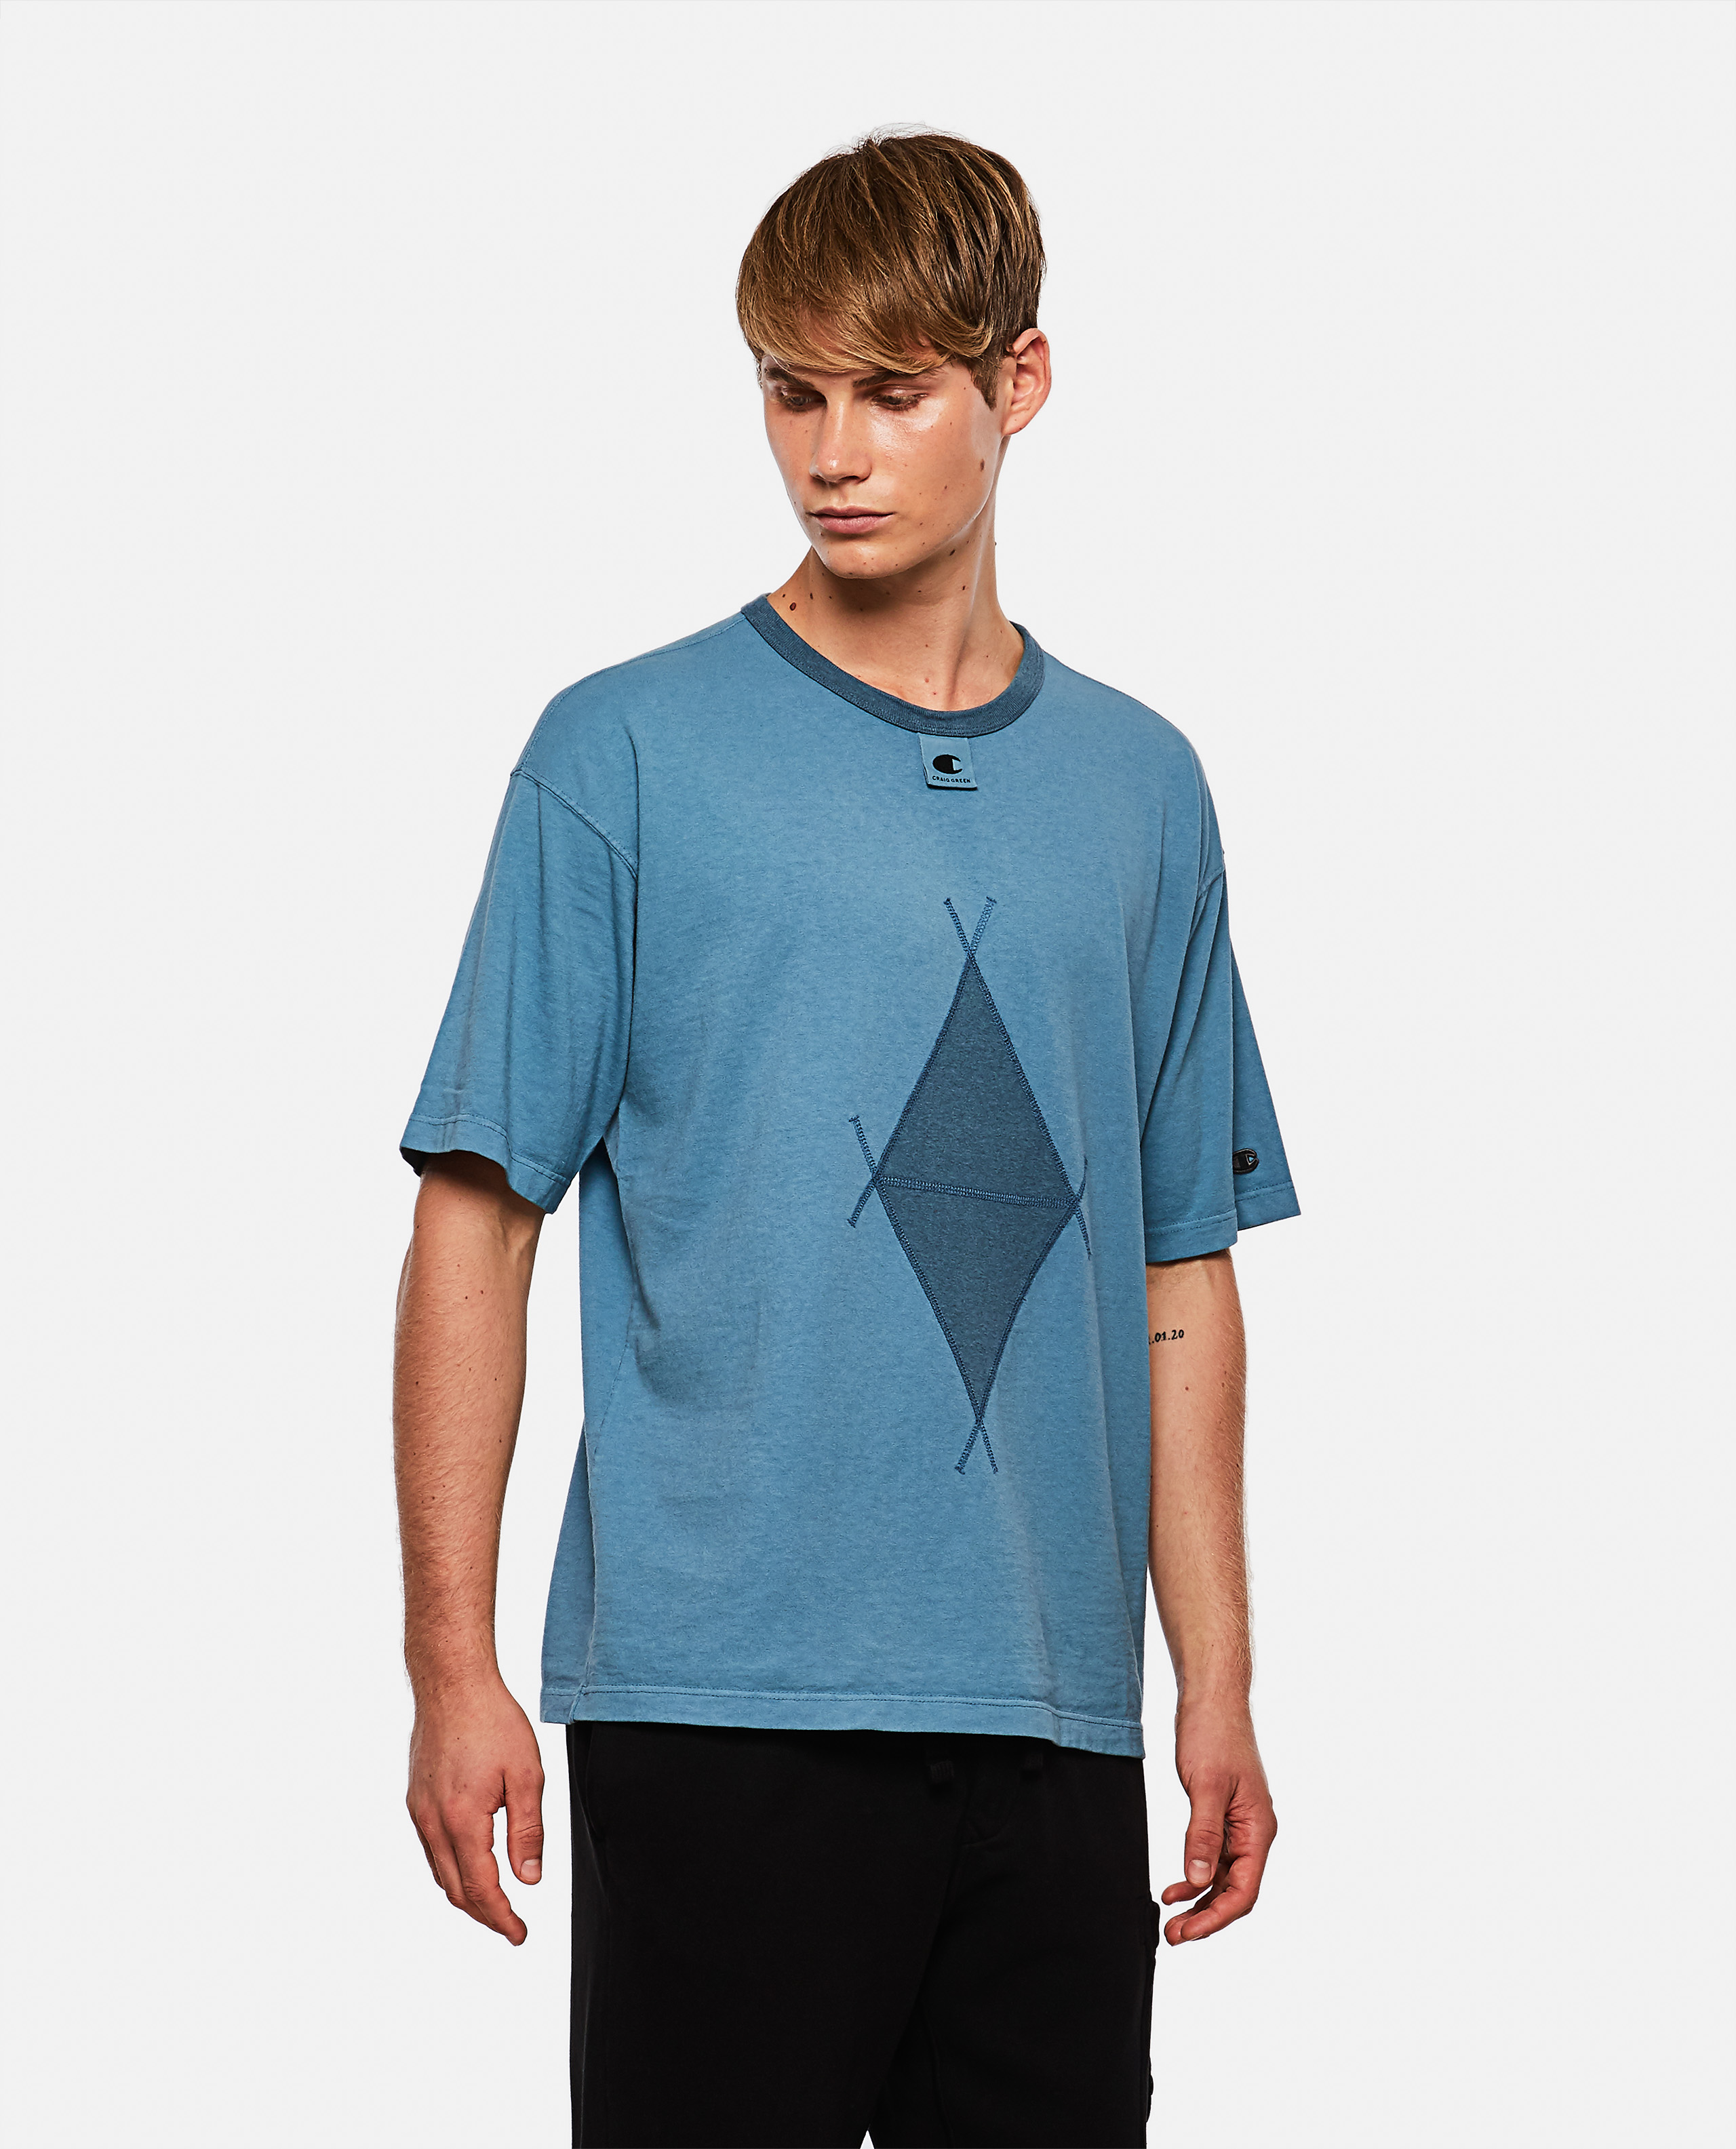 Champion x Craig Green Diamond t-shirt